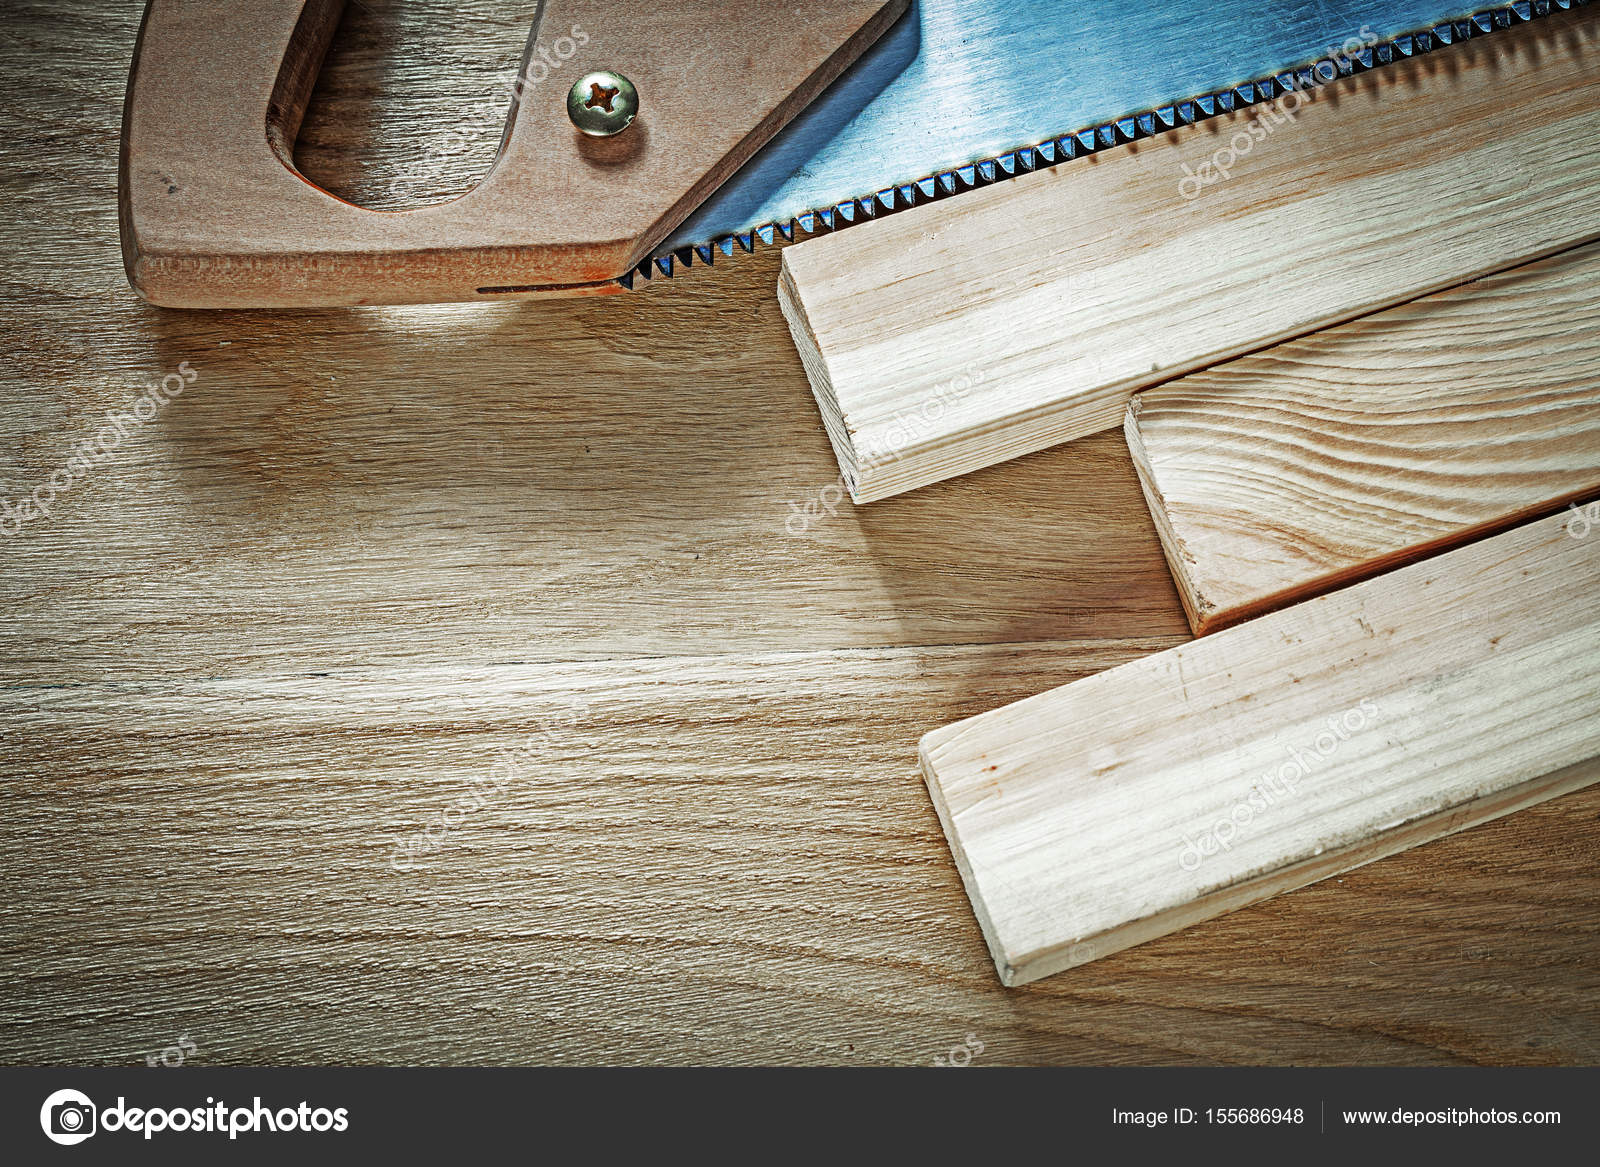 Handsaw Wooden Stud On Wood Board Construction Concept Stock Photo